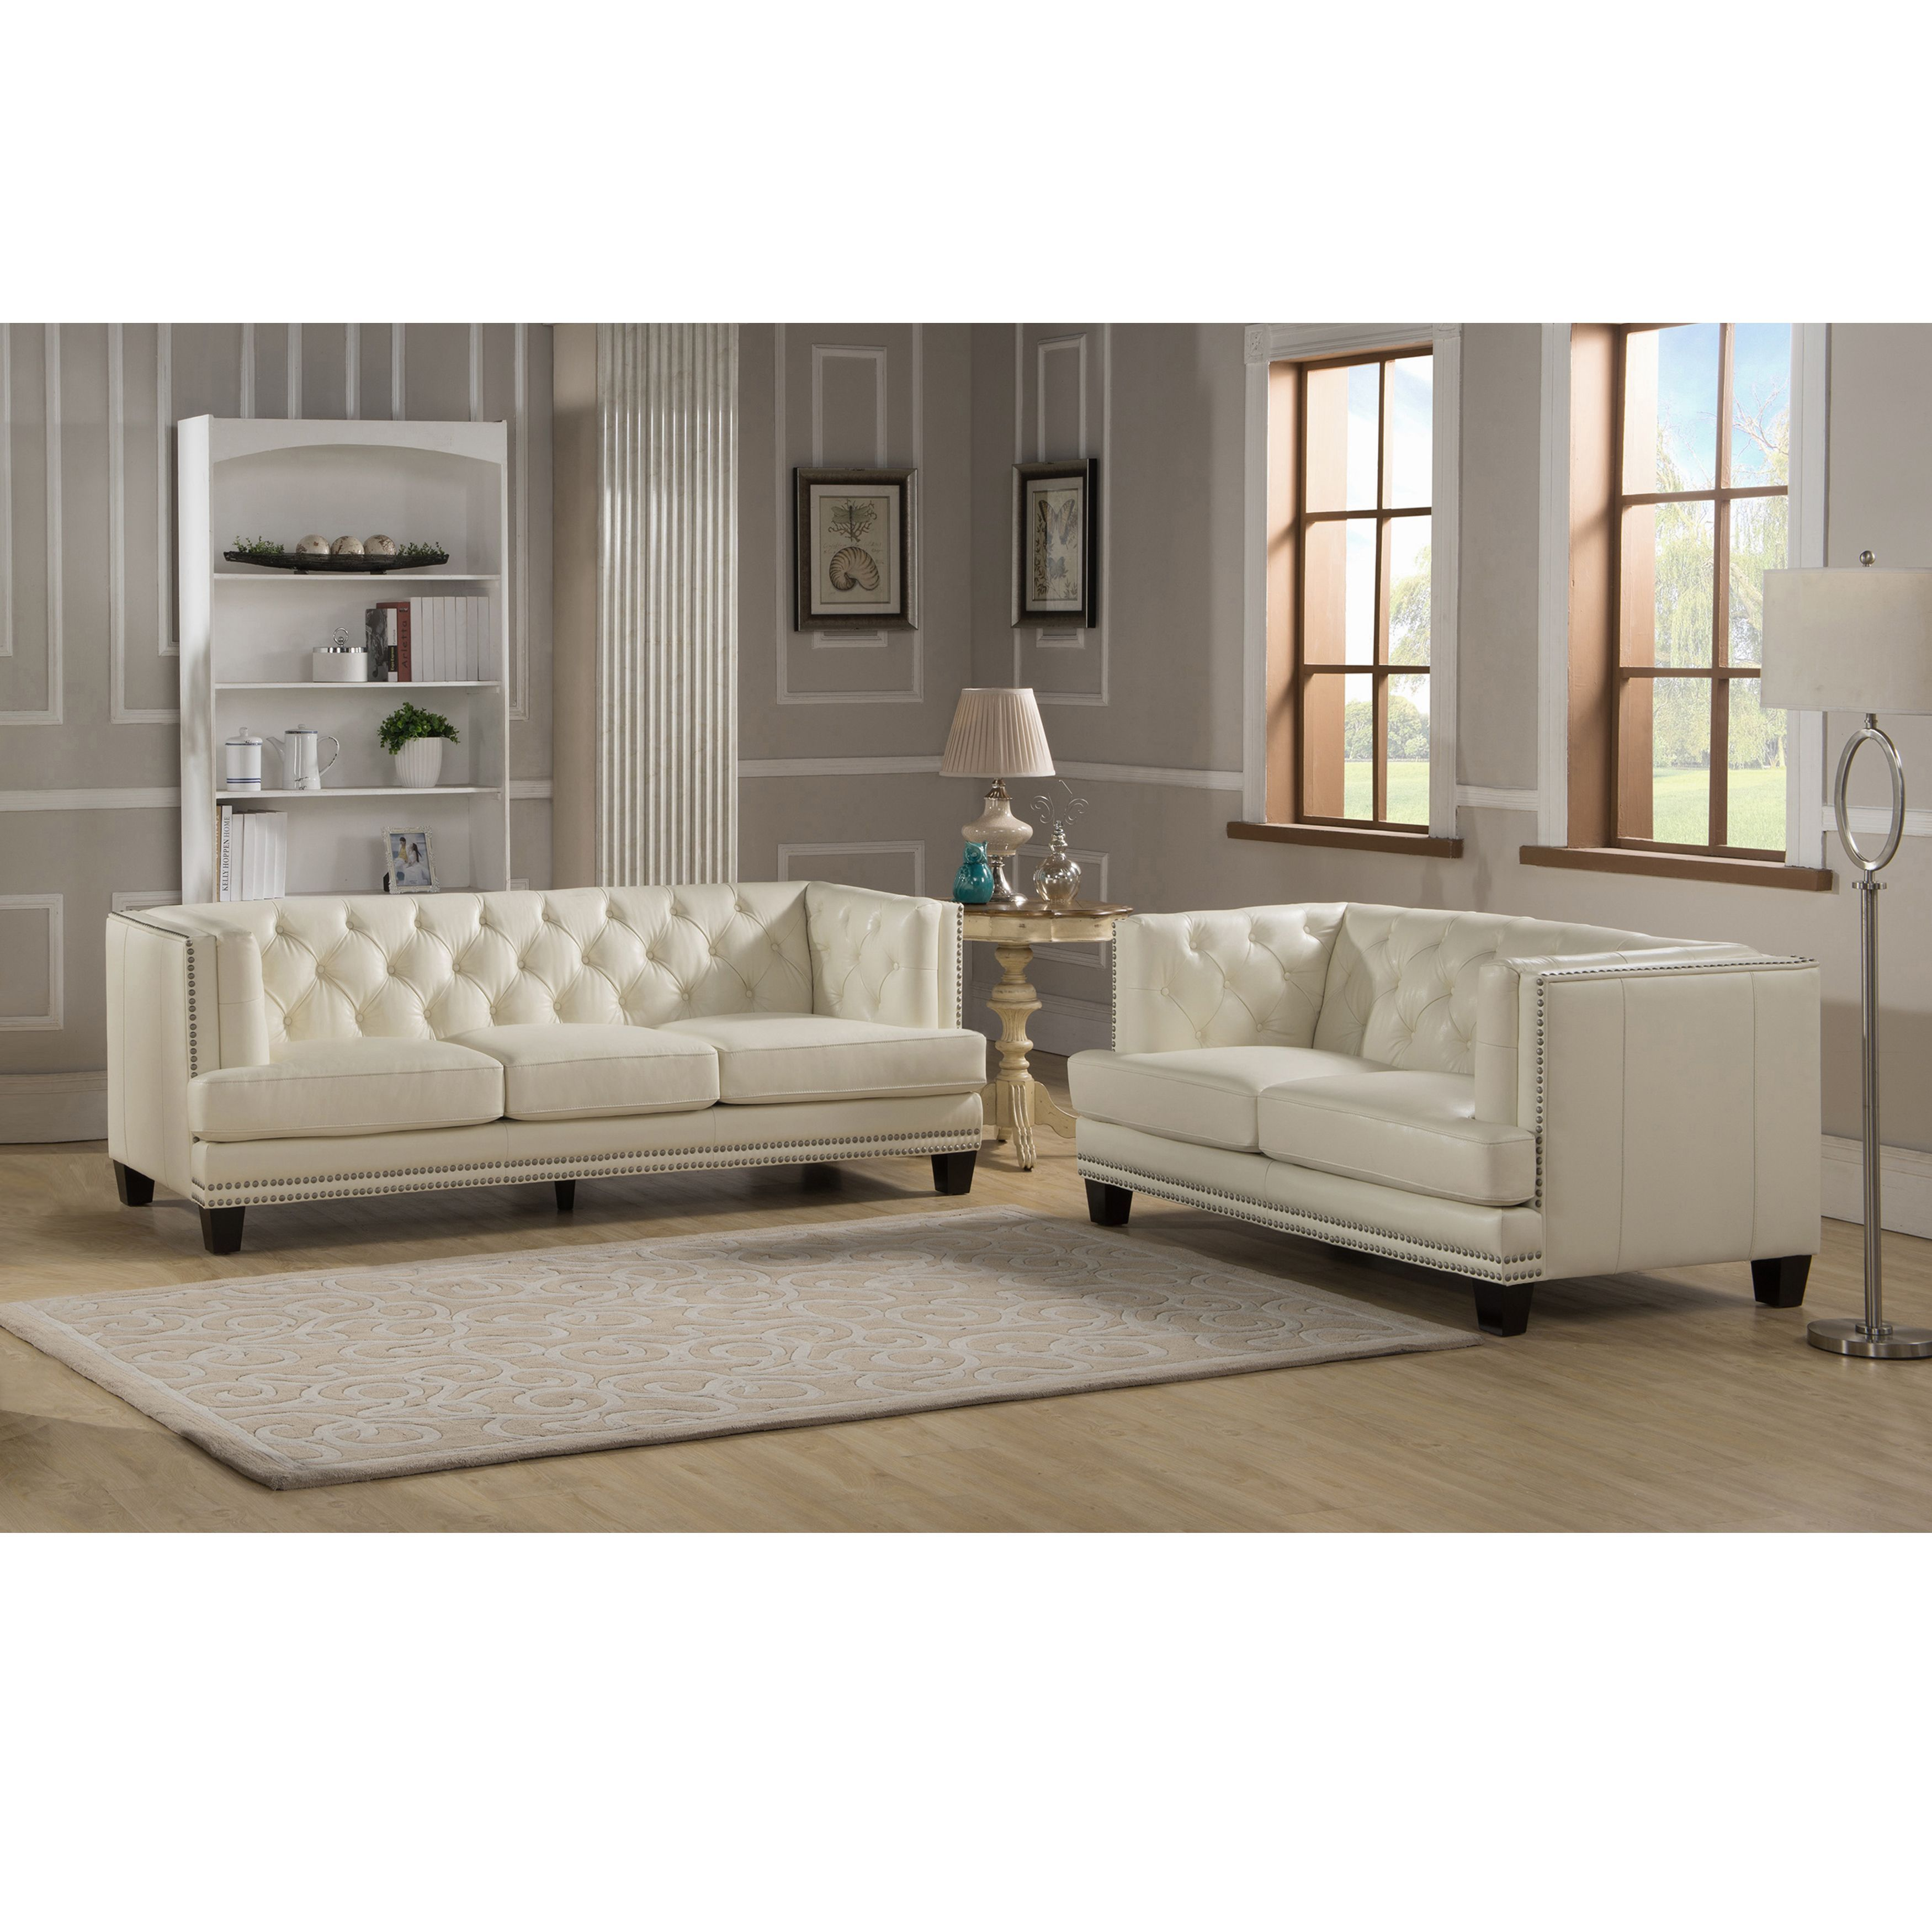 Overstock Com Online Shopping Bedding Furniture Electronics Jewelry Clothing More Leather Living Room Set Living Room Leather Sofa And Loveseat Set #tufted #leather #living #room #set